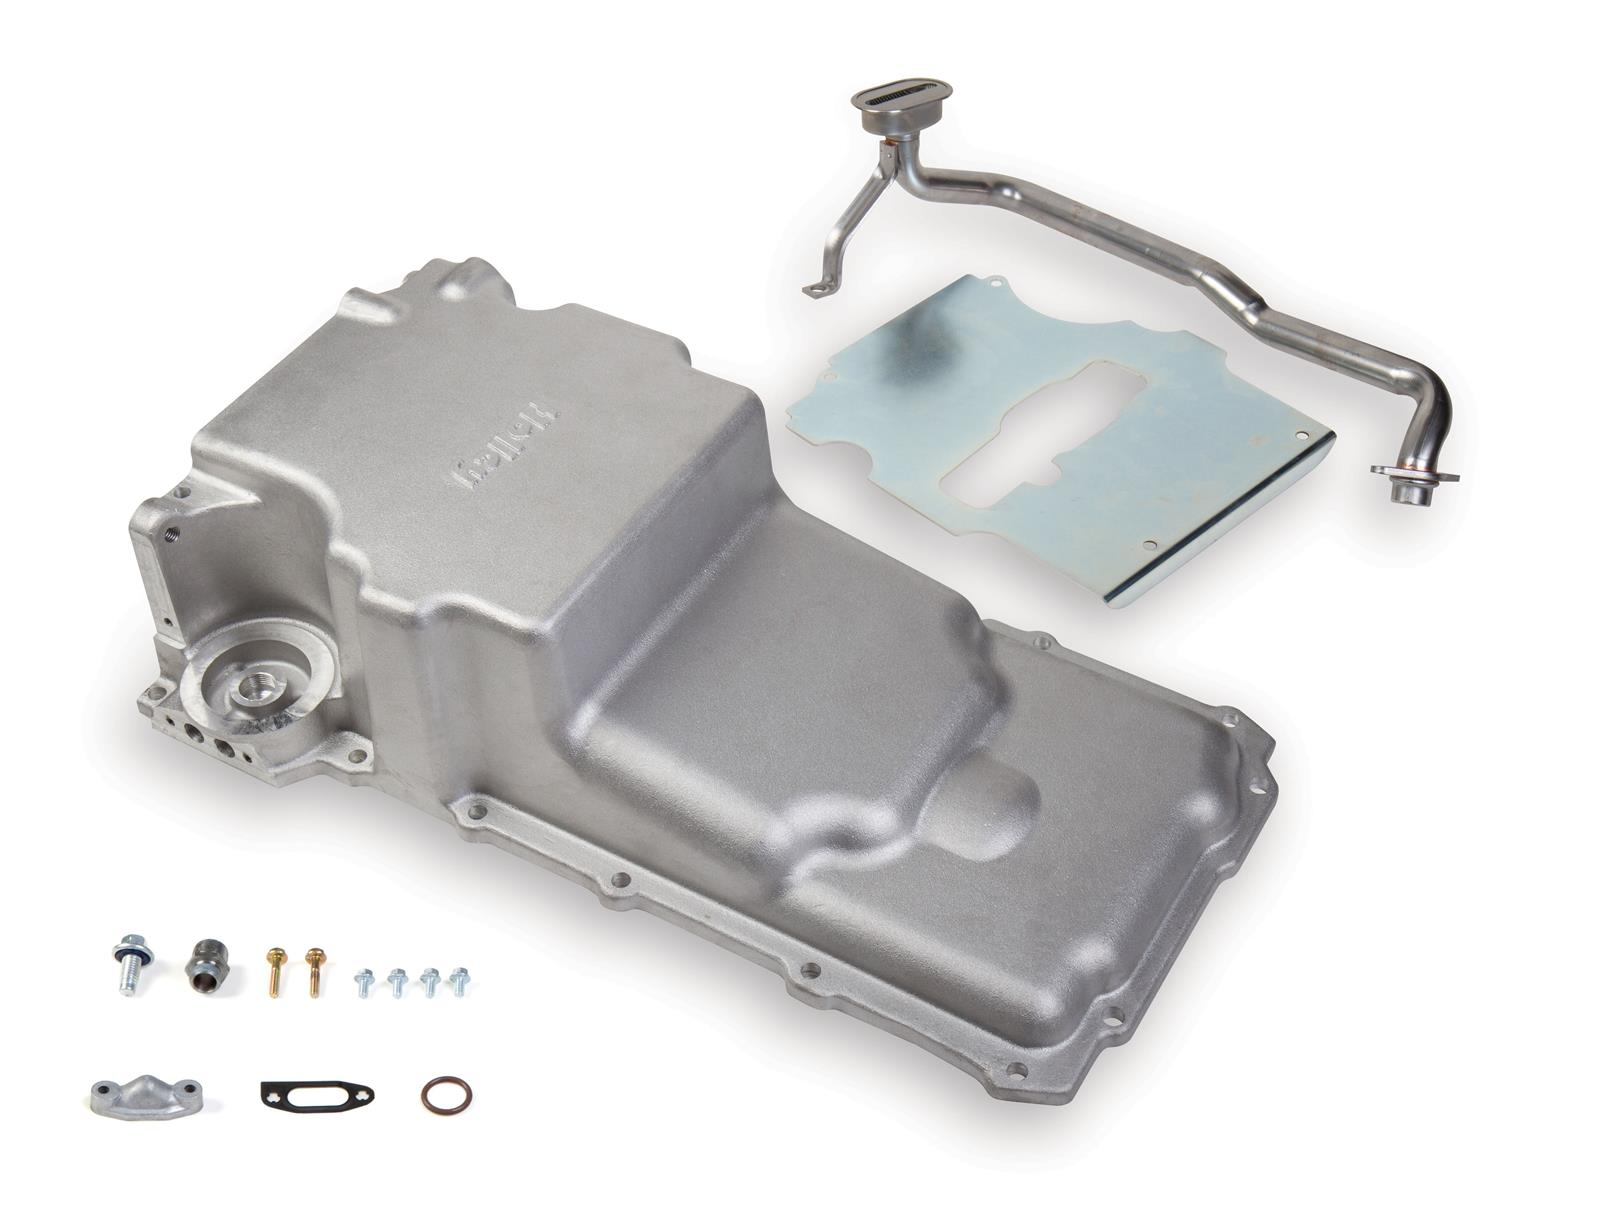 hight resolution of holley gm ls retrofit engine oil pans 302 2 free shipping on orders over 99 at summit racing